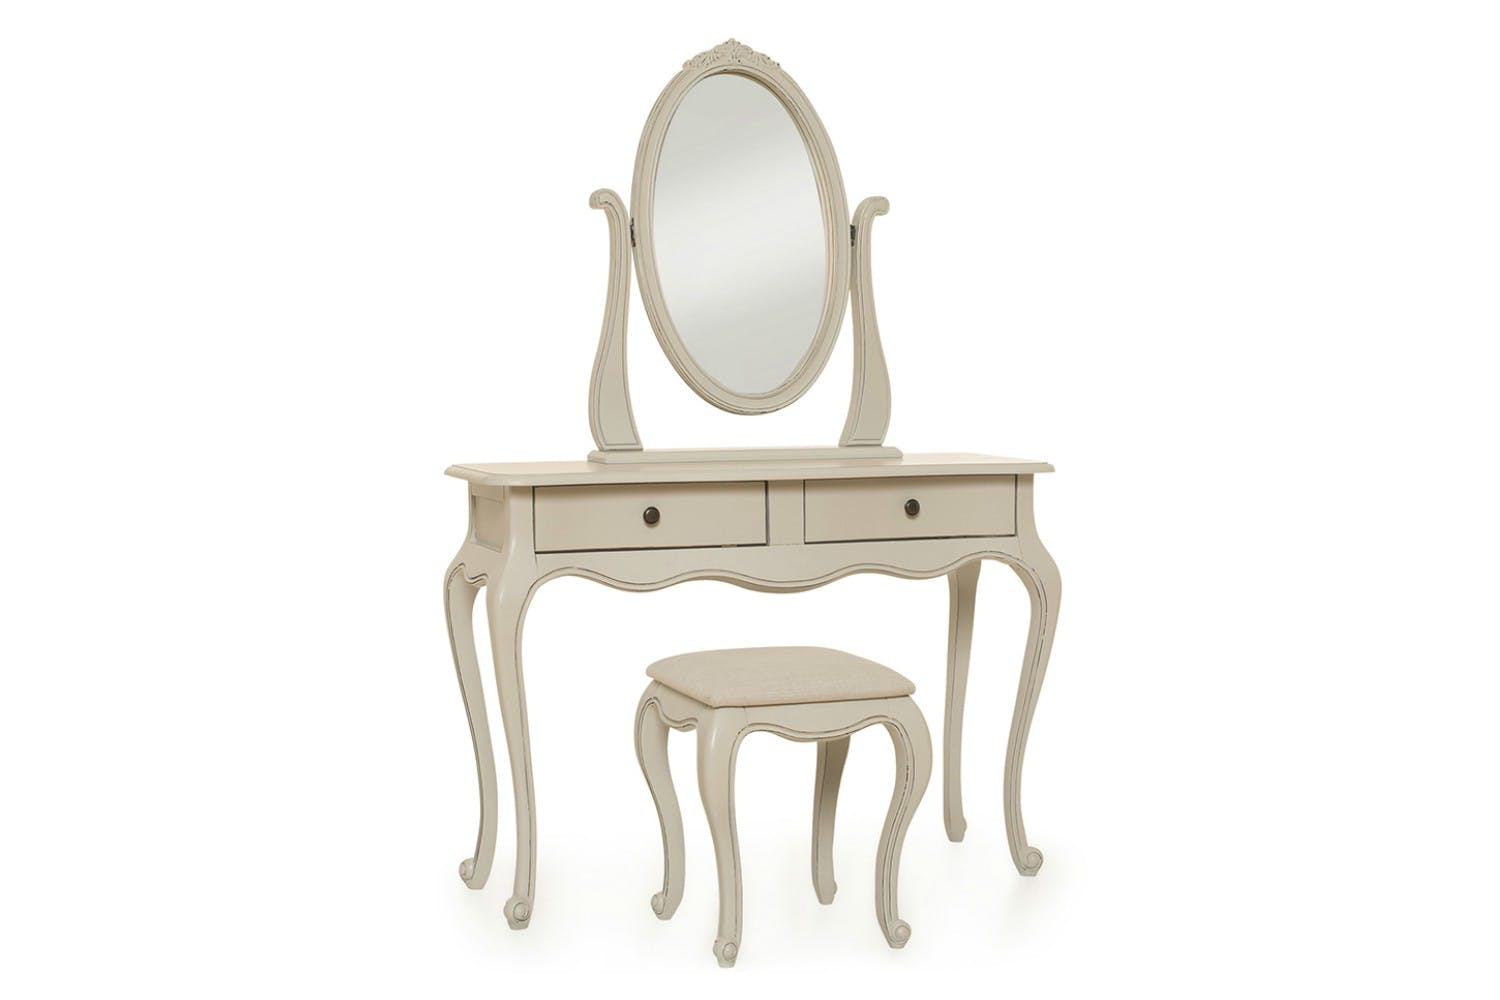 Harrogate Dressing Table with Mirror & Stool